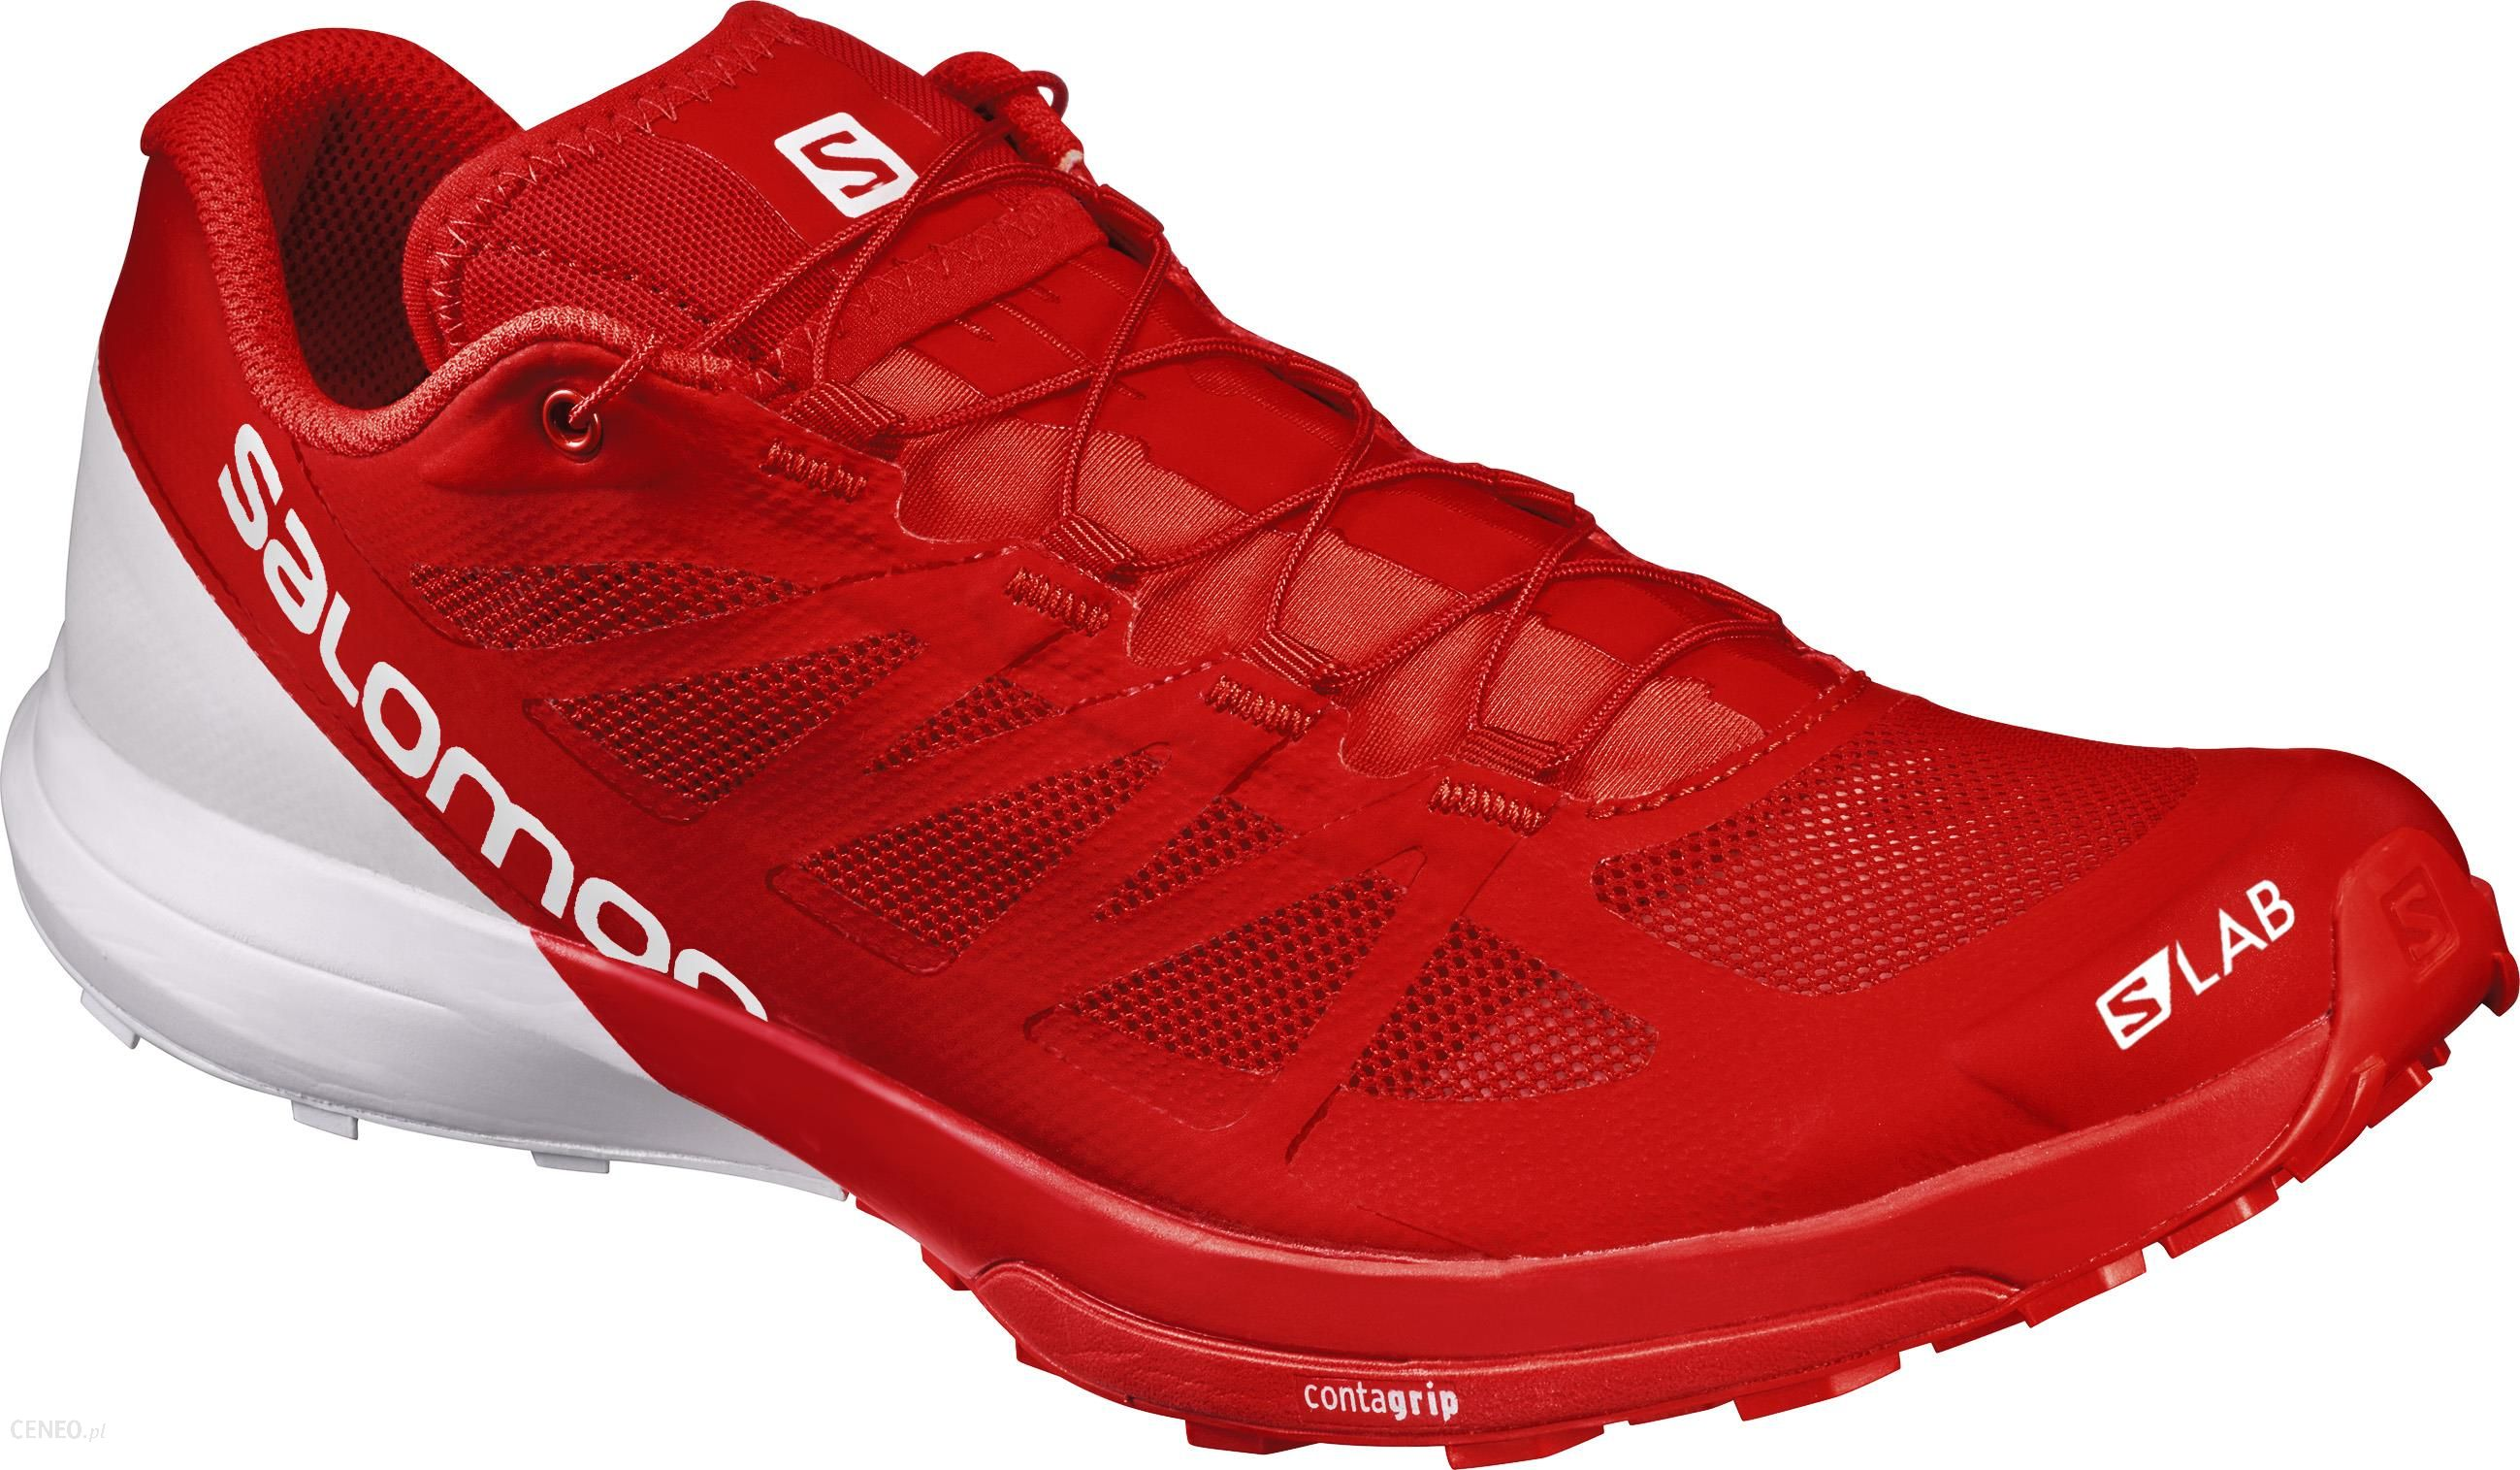 Salomon Damskie Salomon S Lab Speed Trail Buty Do Biegania